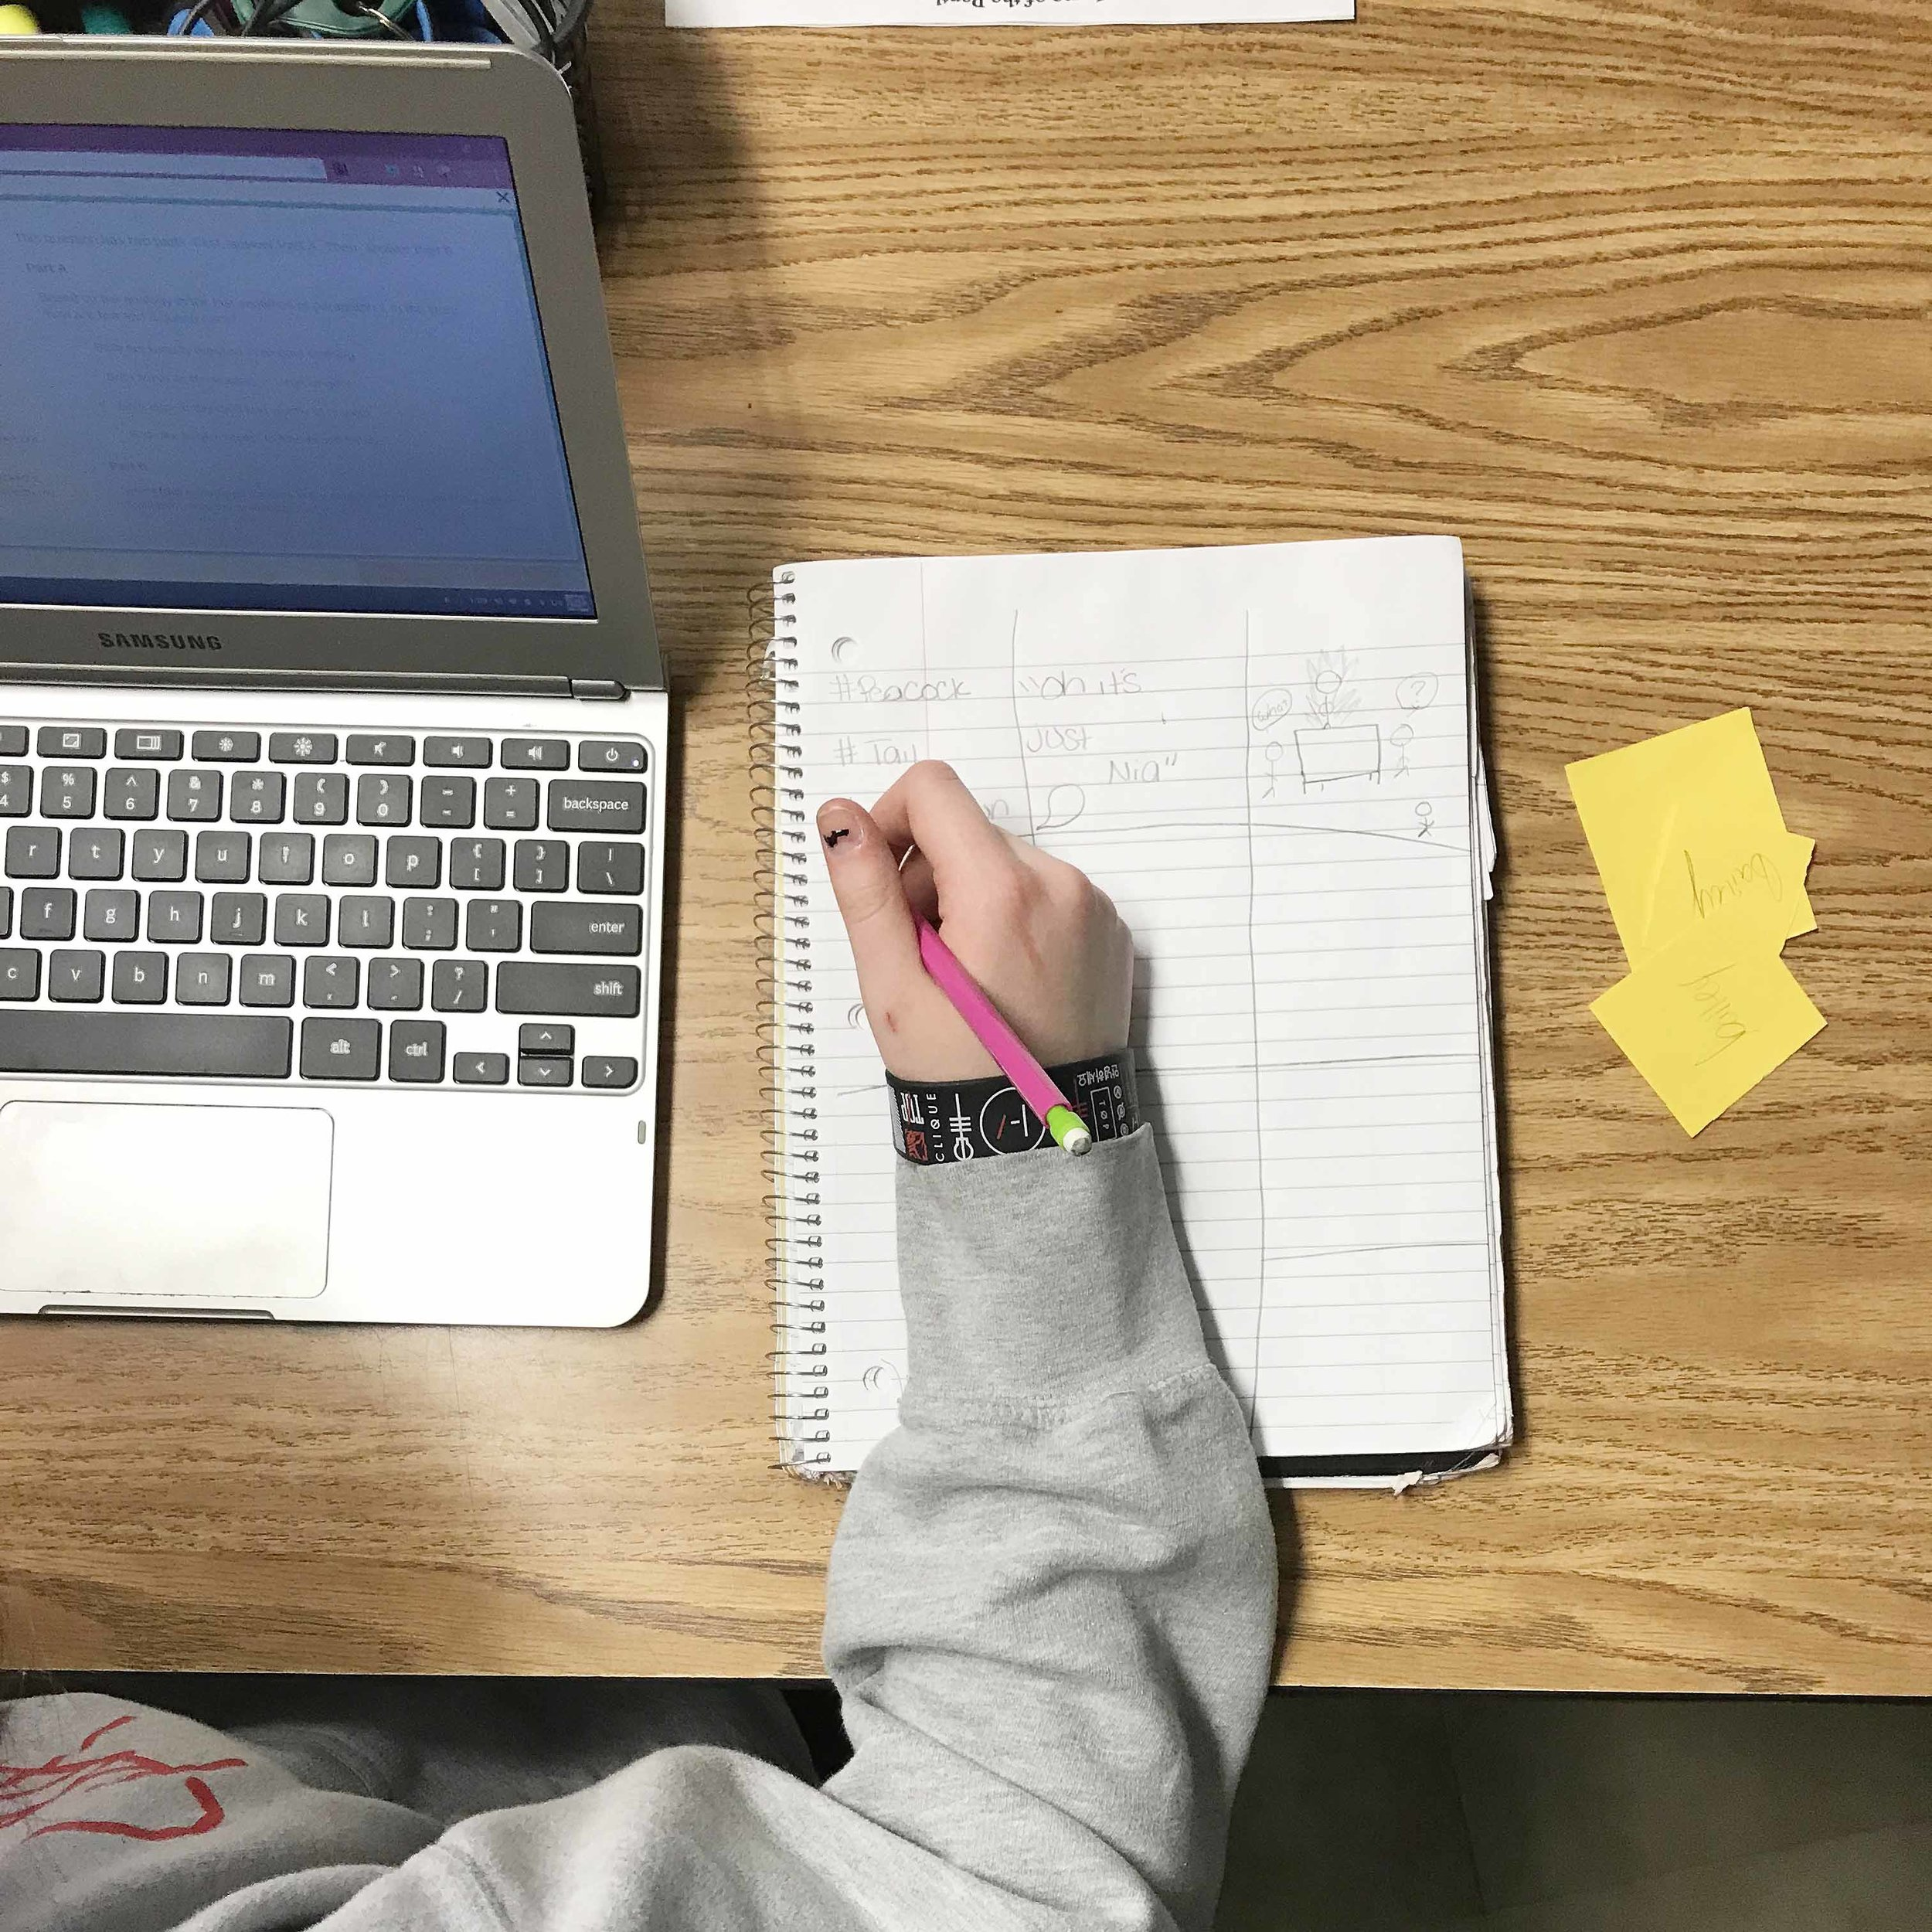 This student earned tickets for staying engaged and annotating while reading an informational text on the computer.